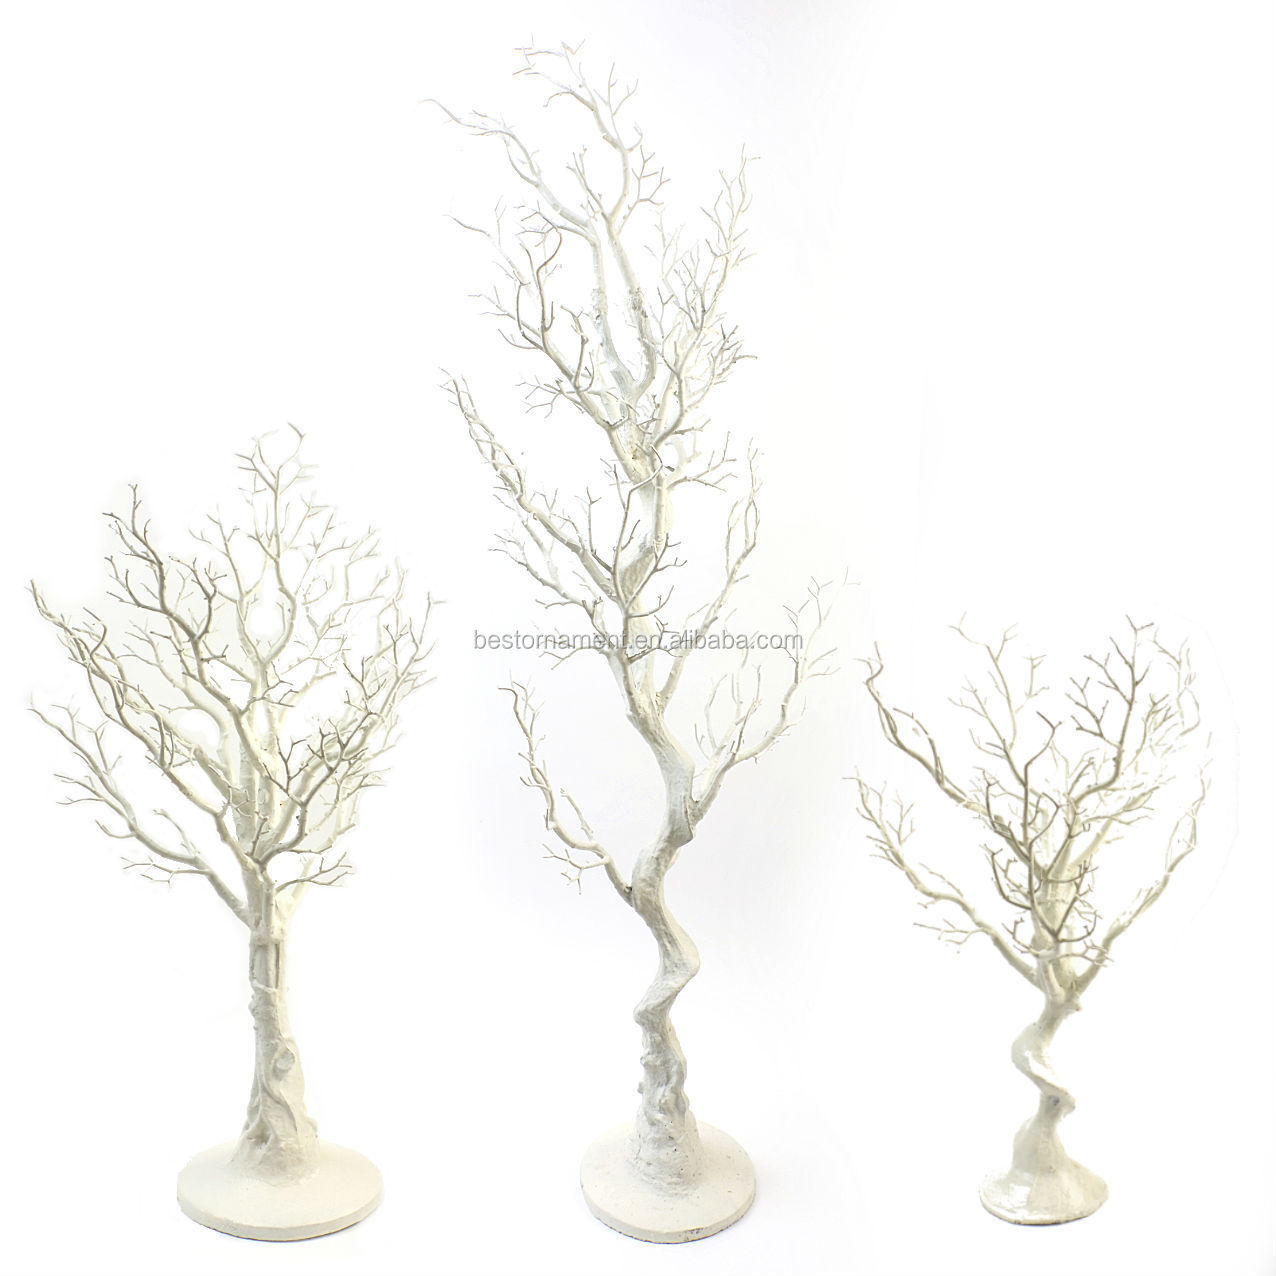 manzanita souhaitant arbre de mariage d coration de table buy product on. Black Bedroom Furniture Sets. Home Design Ideas